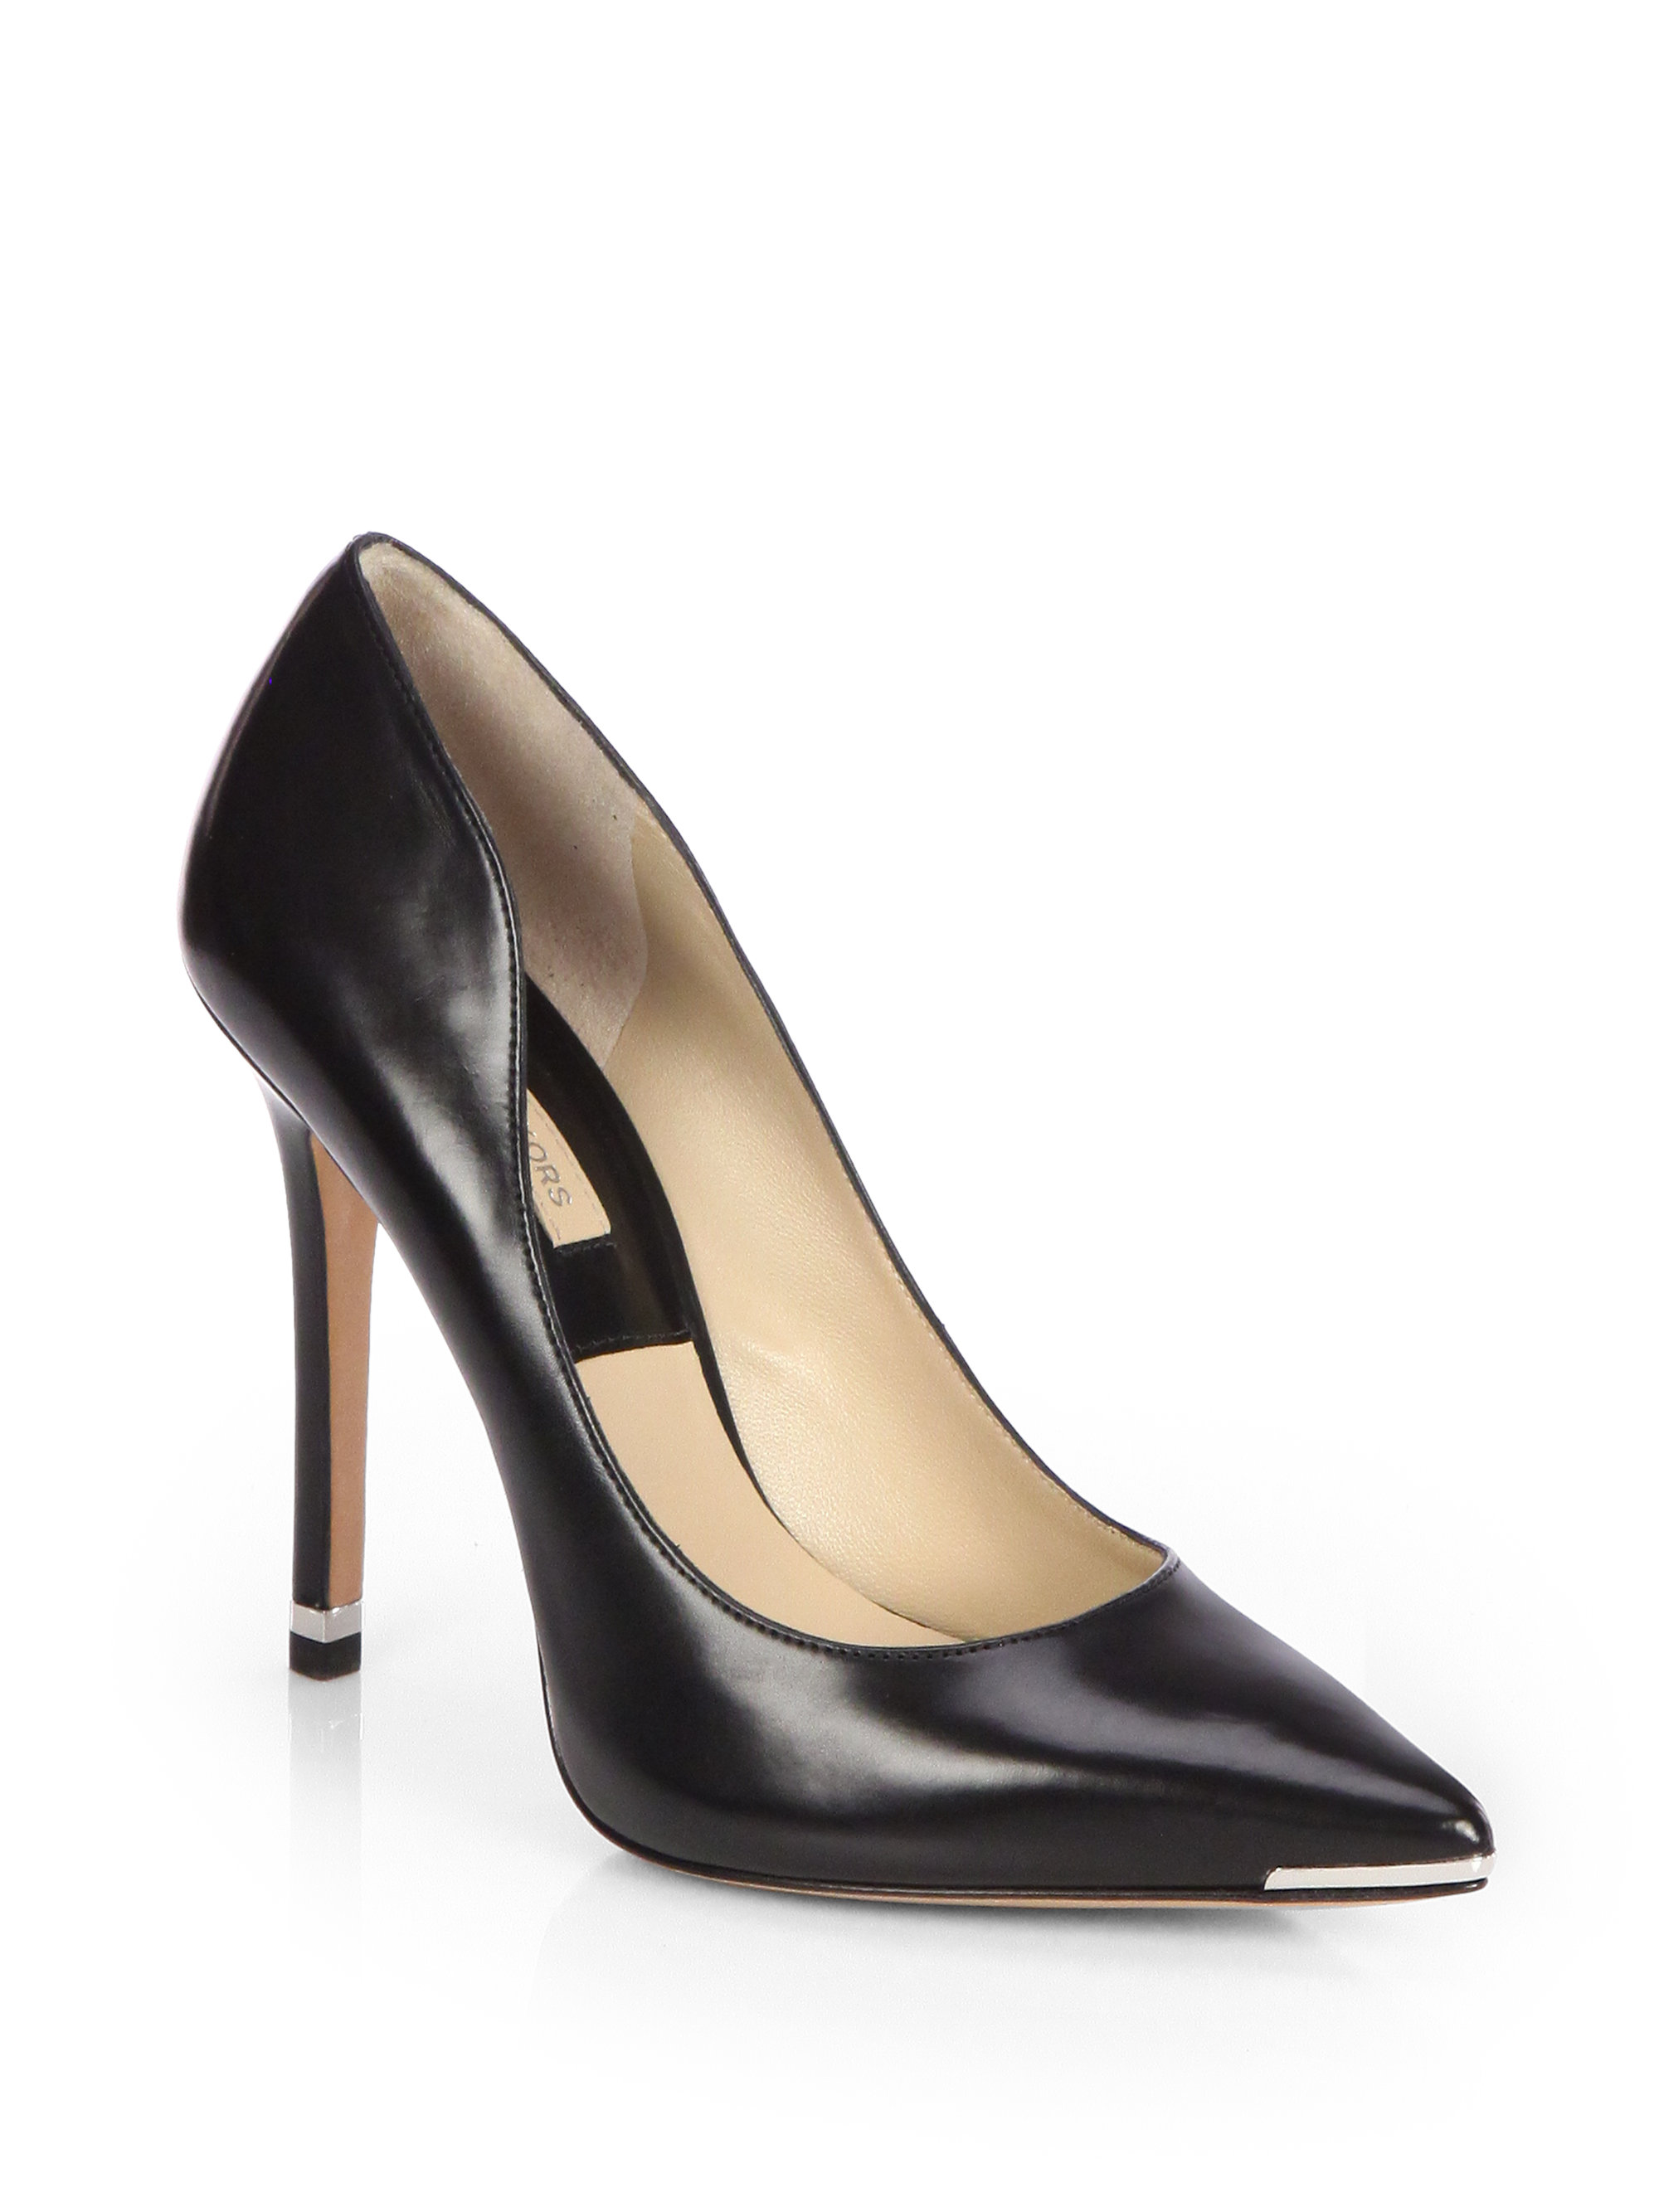 Lyst Michael Kors Avra Leather Pumps In Black